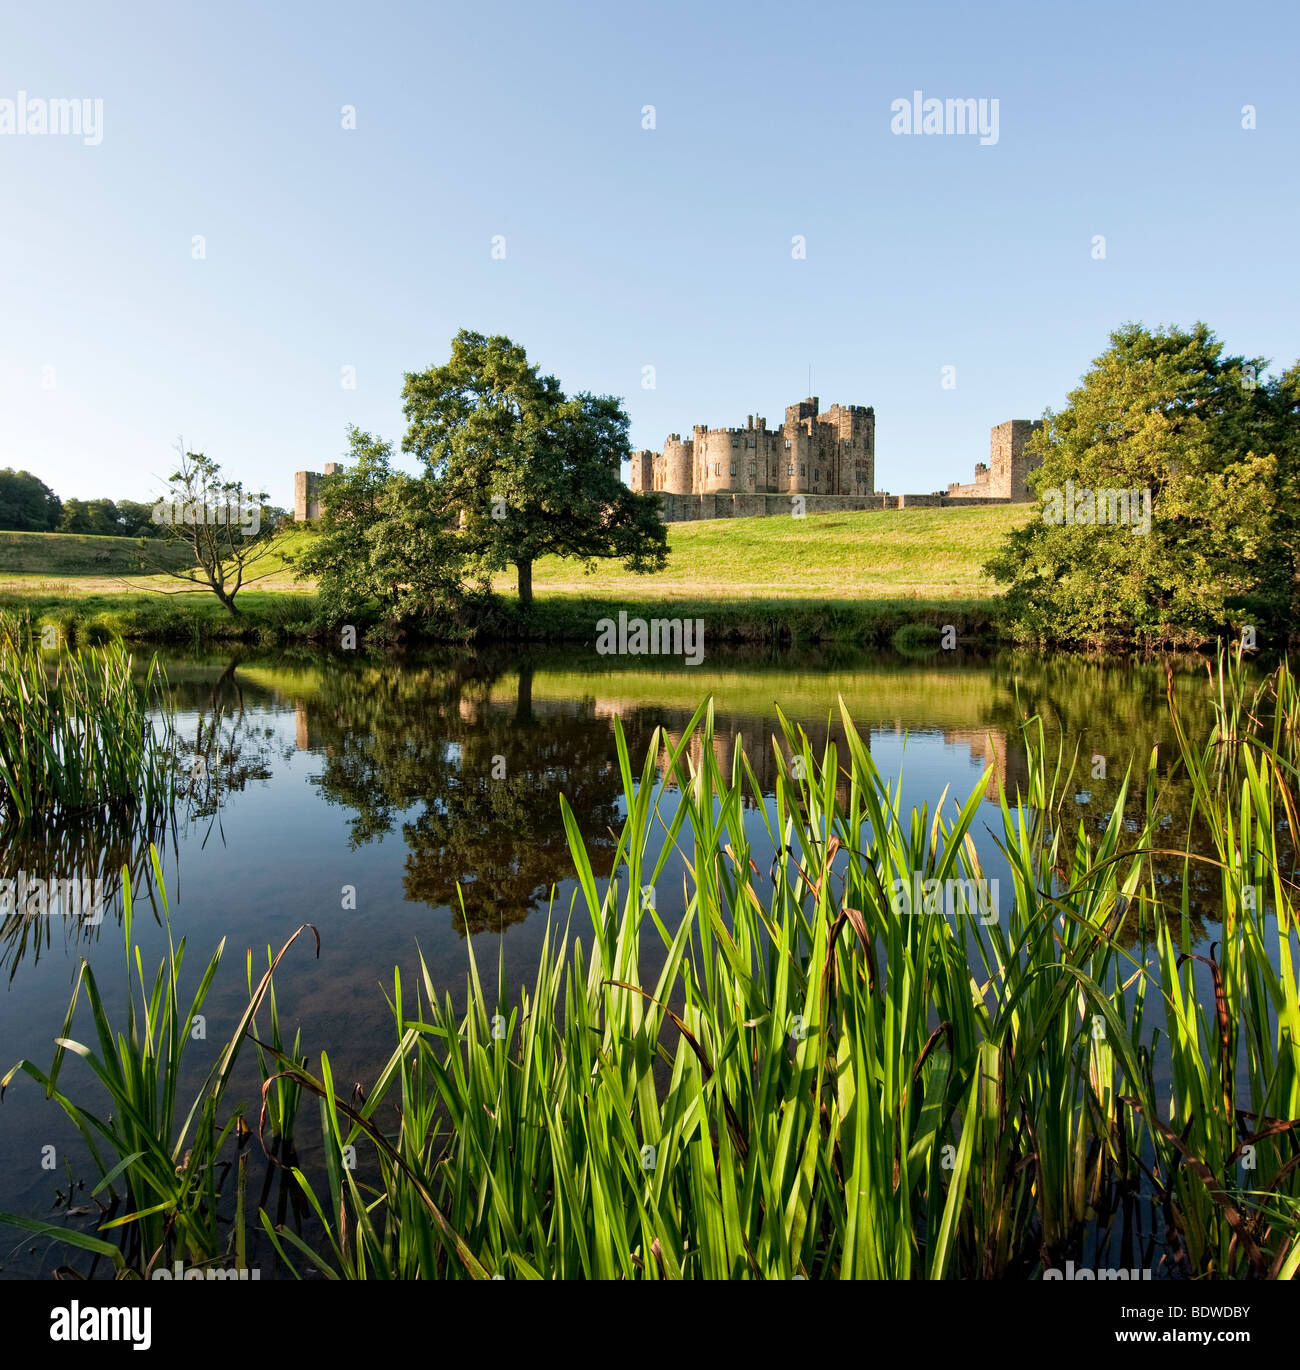 Alnwick castle from the banks of the River Aln on a sunny summer's morning. - Stock Image